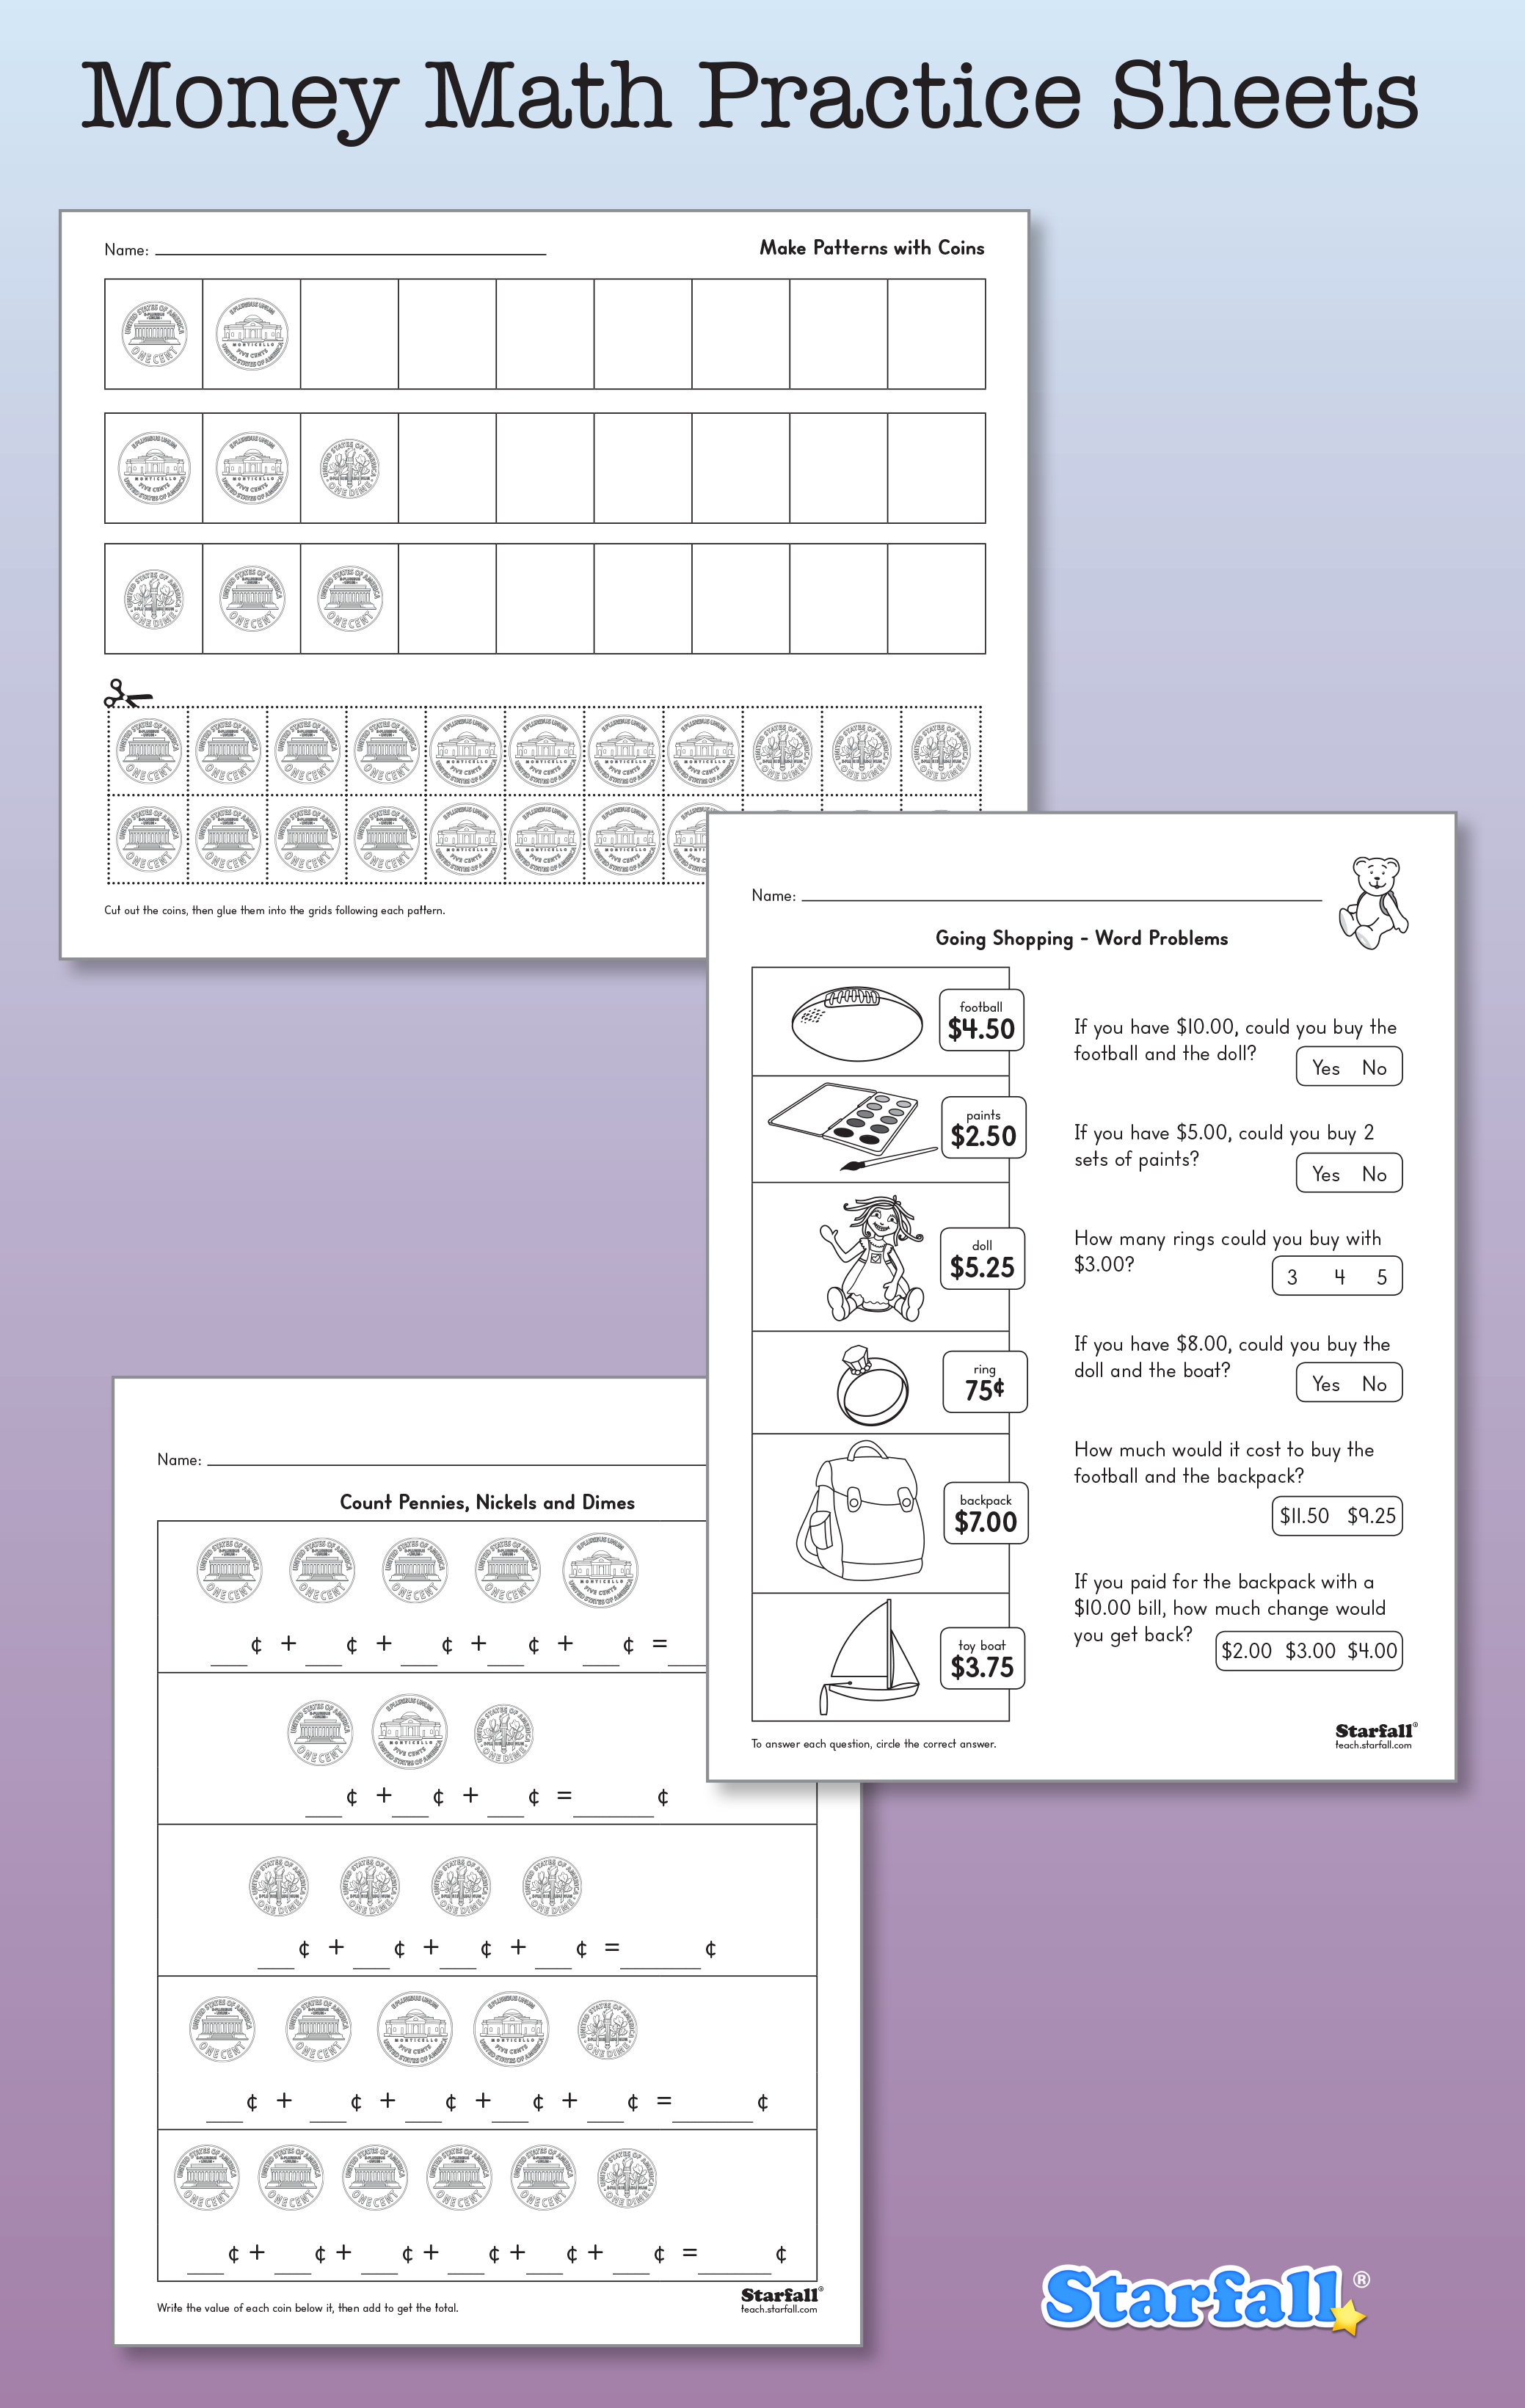 Practice Money Math With These New Worksheets And More